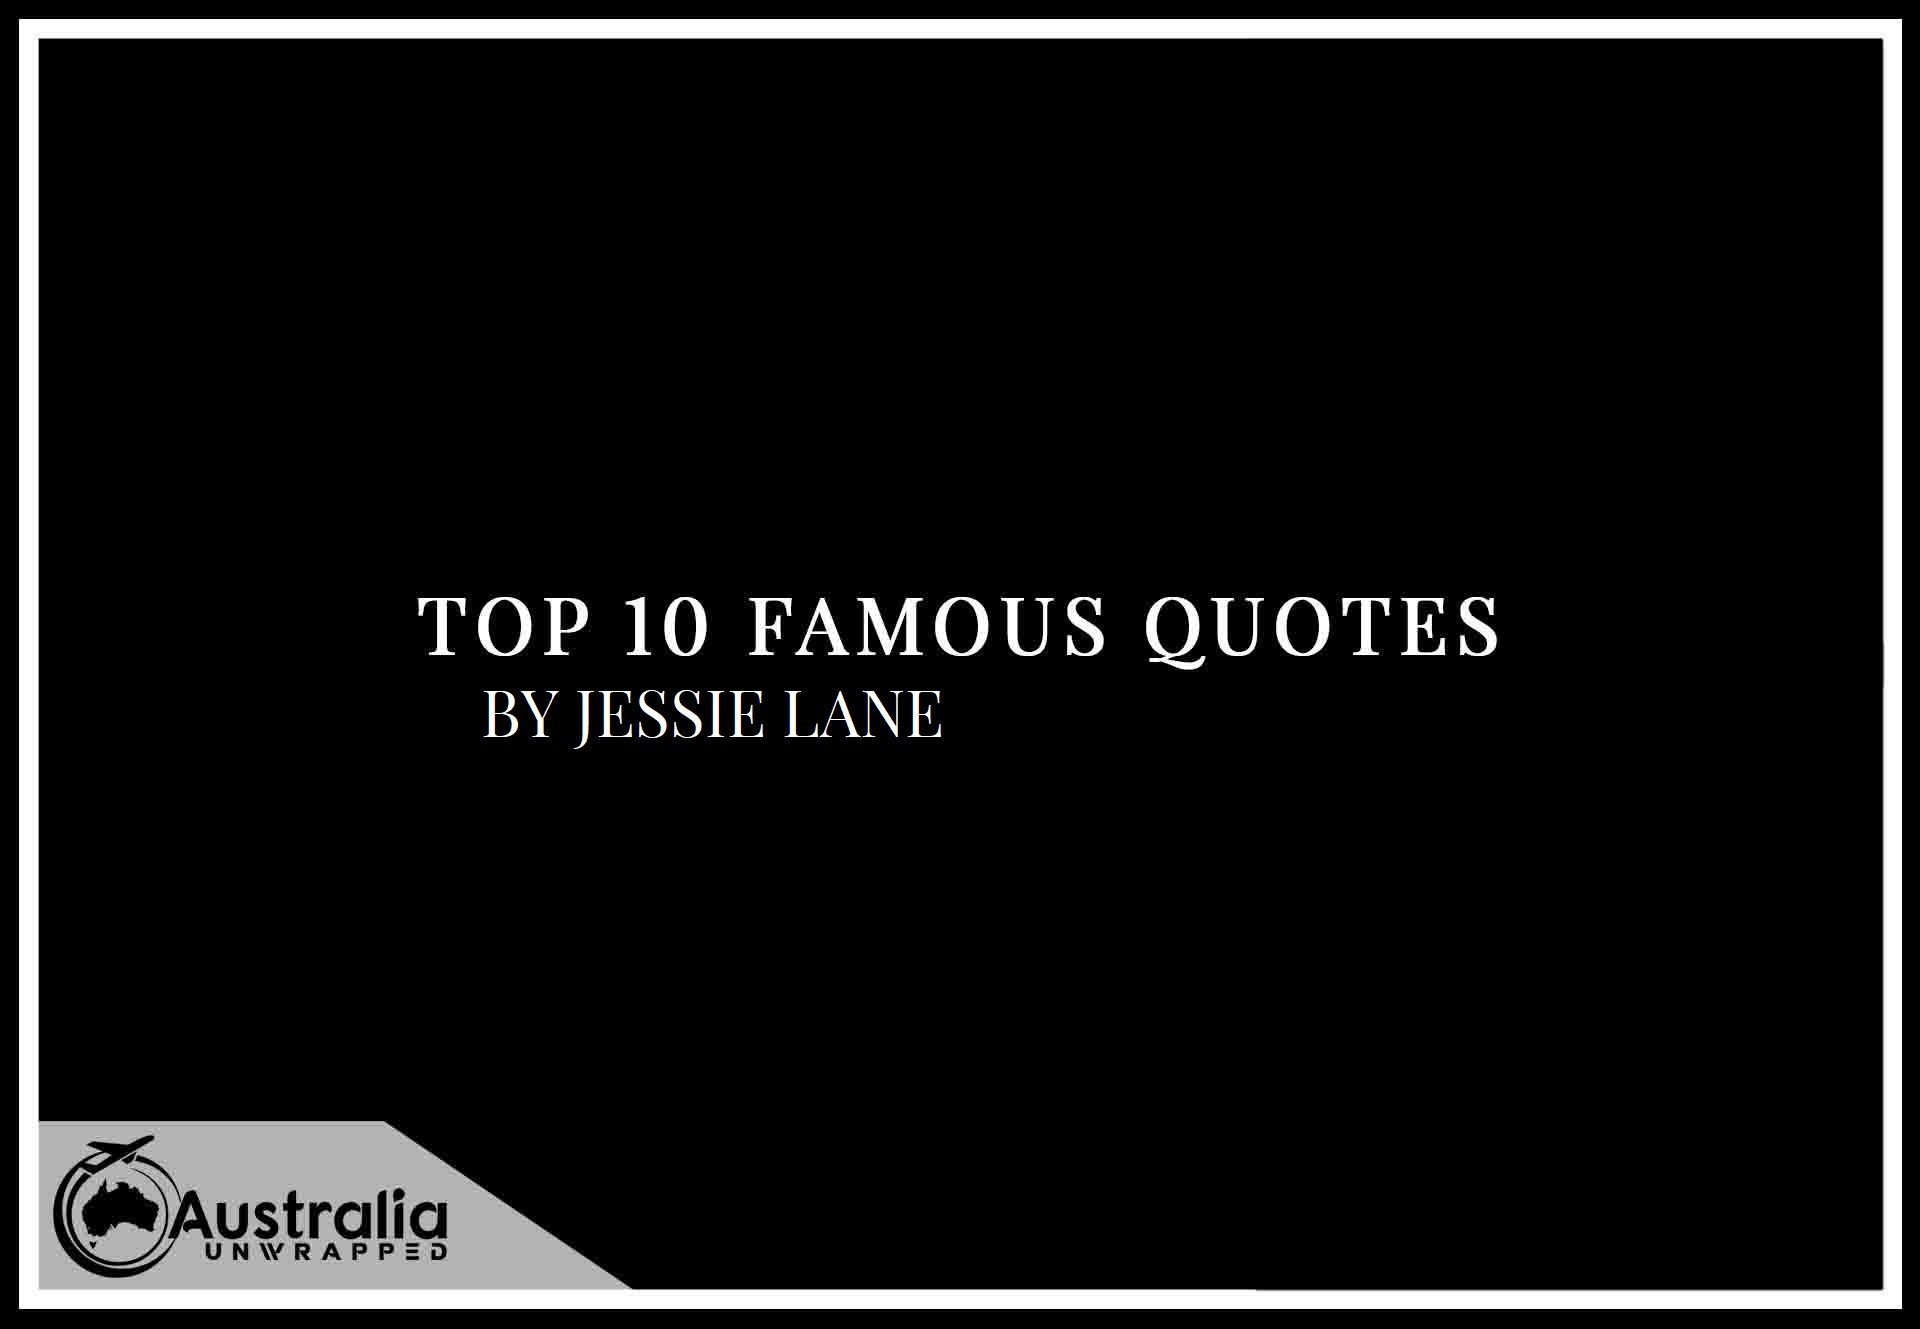 Top 10 Famous Quotes by Author Jessie Lane